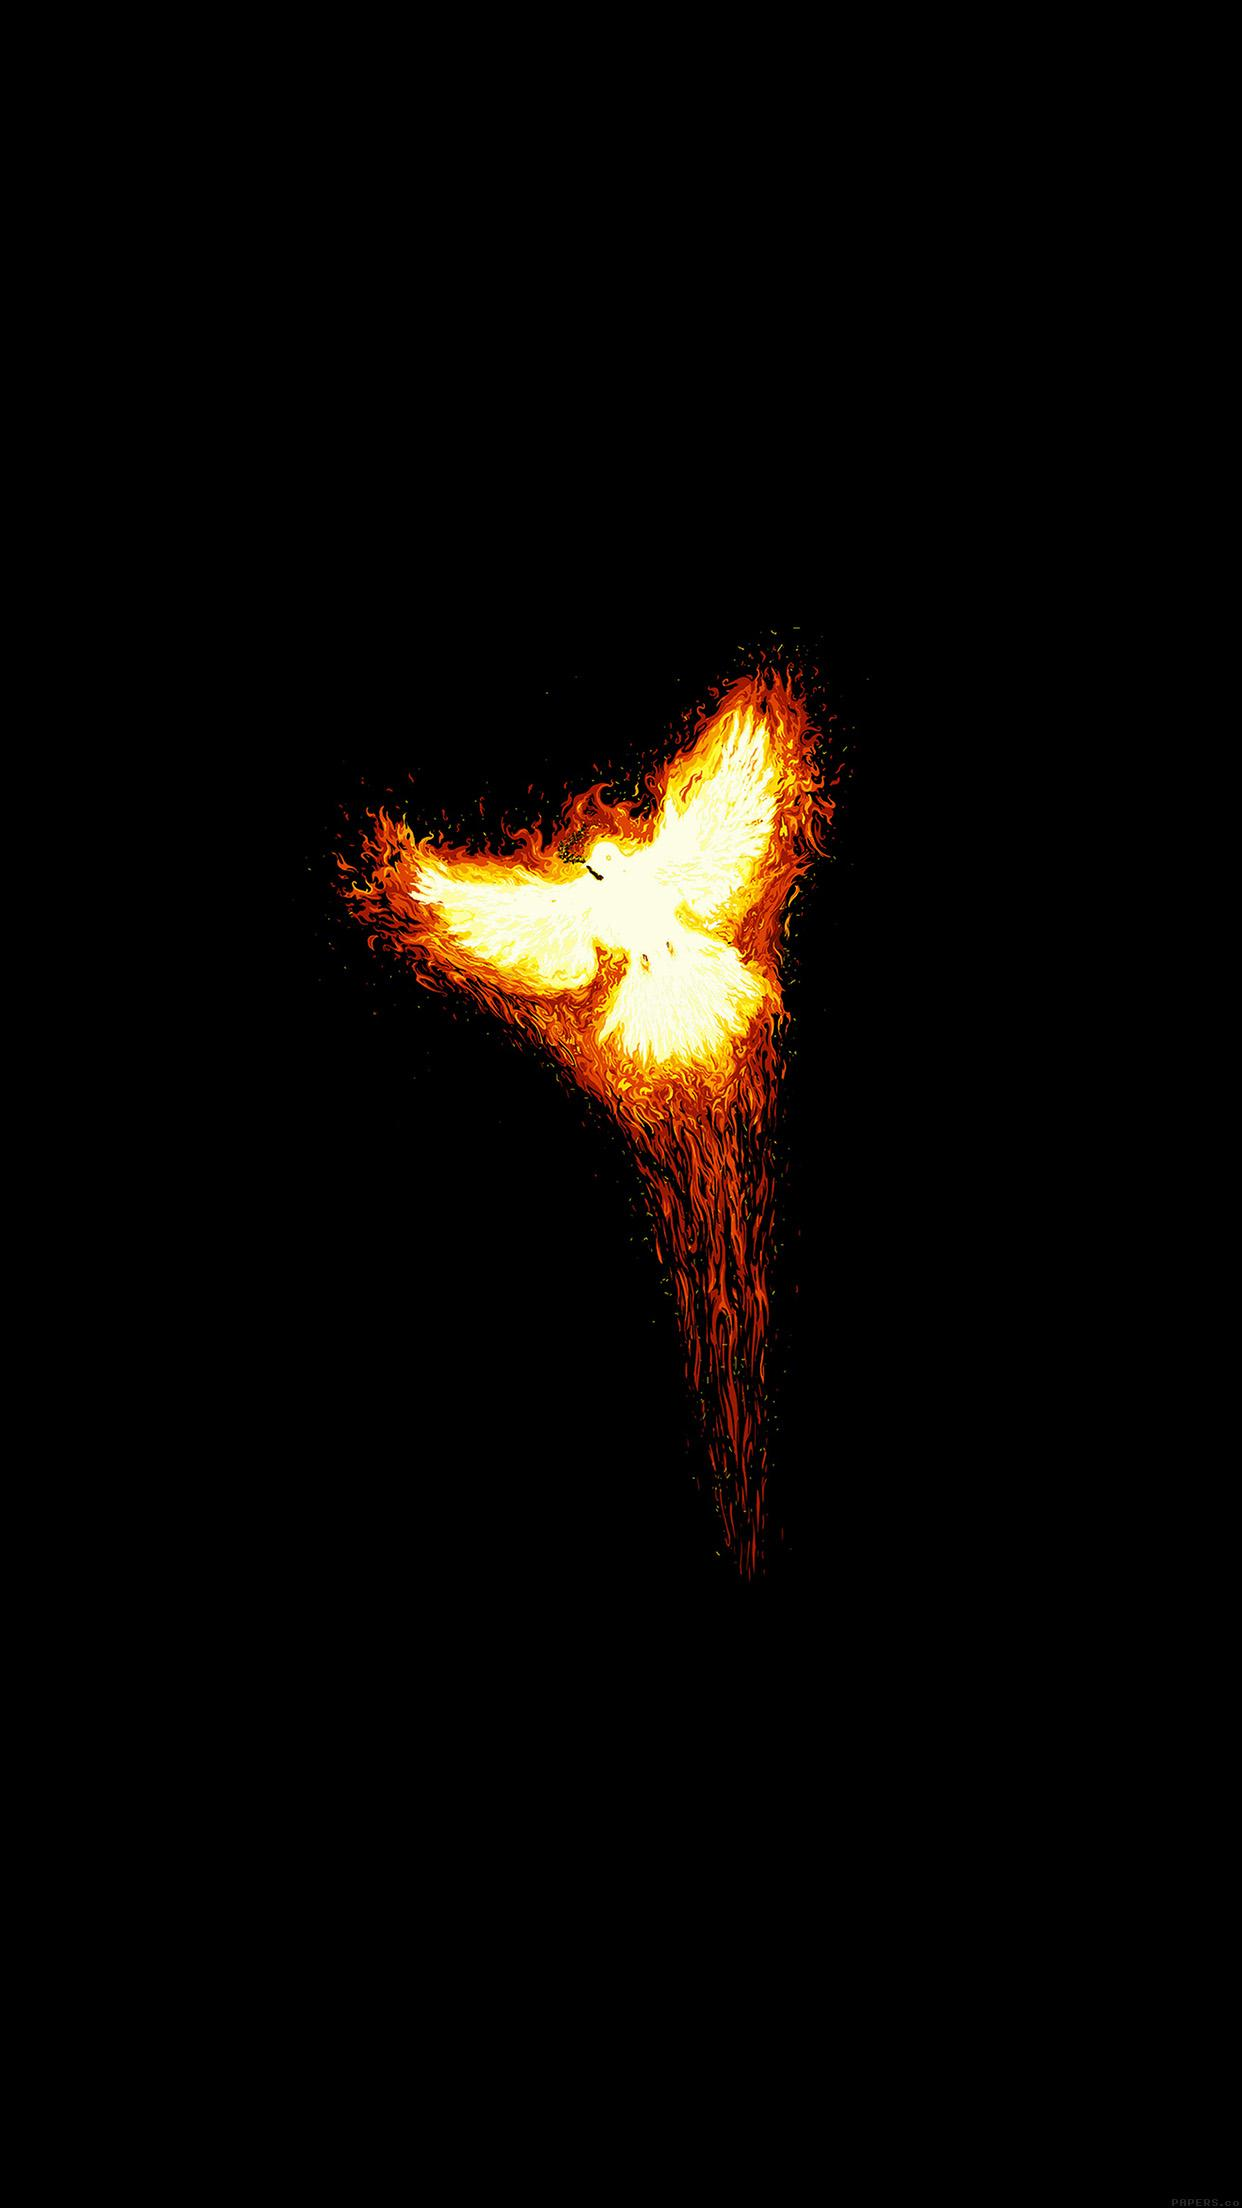 phoenix minimalist 3wallpapers iphone parallax phoenix minimalist